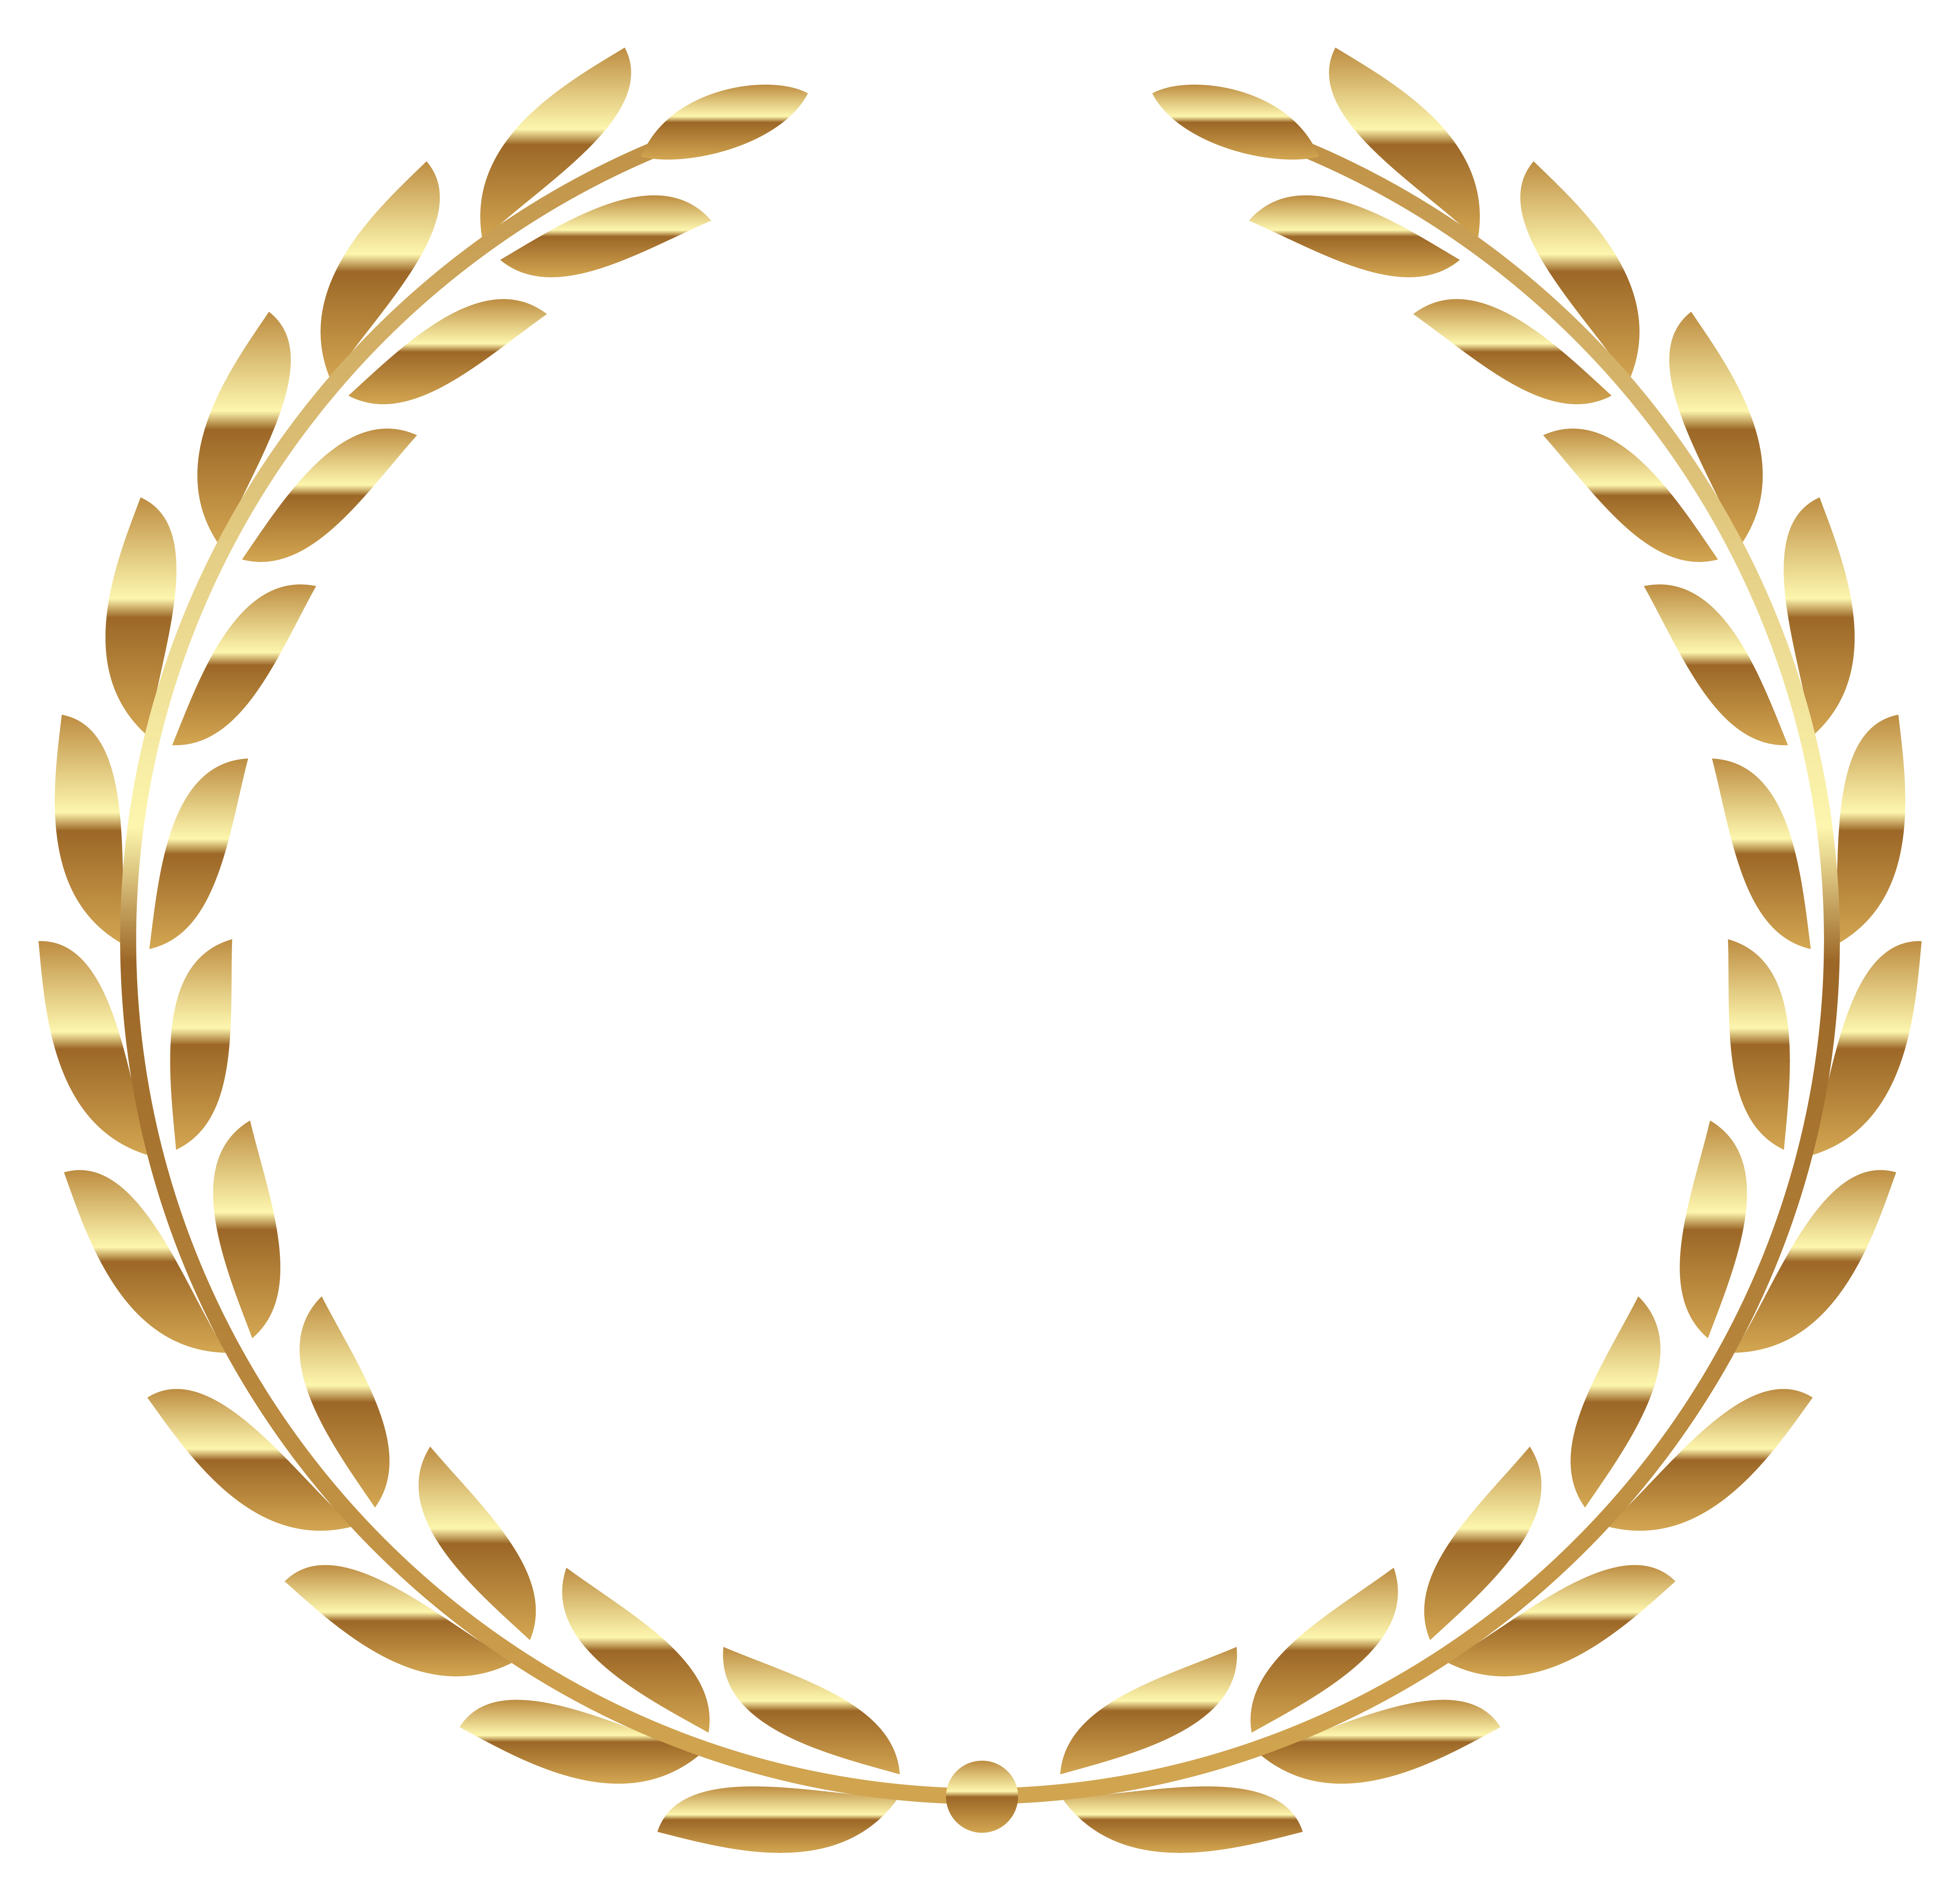 Transparent Gold Wreath Png Clipart Picture Gallery Yopriceville High Quality Images And Transparent Pn Circle Clipart Gold Wreath Clip Art Frames Borders